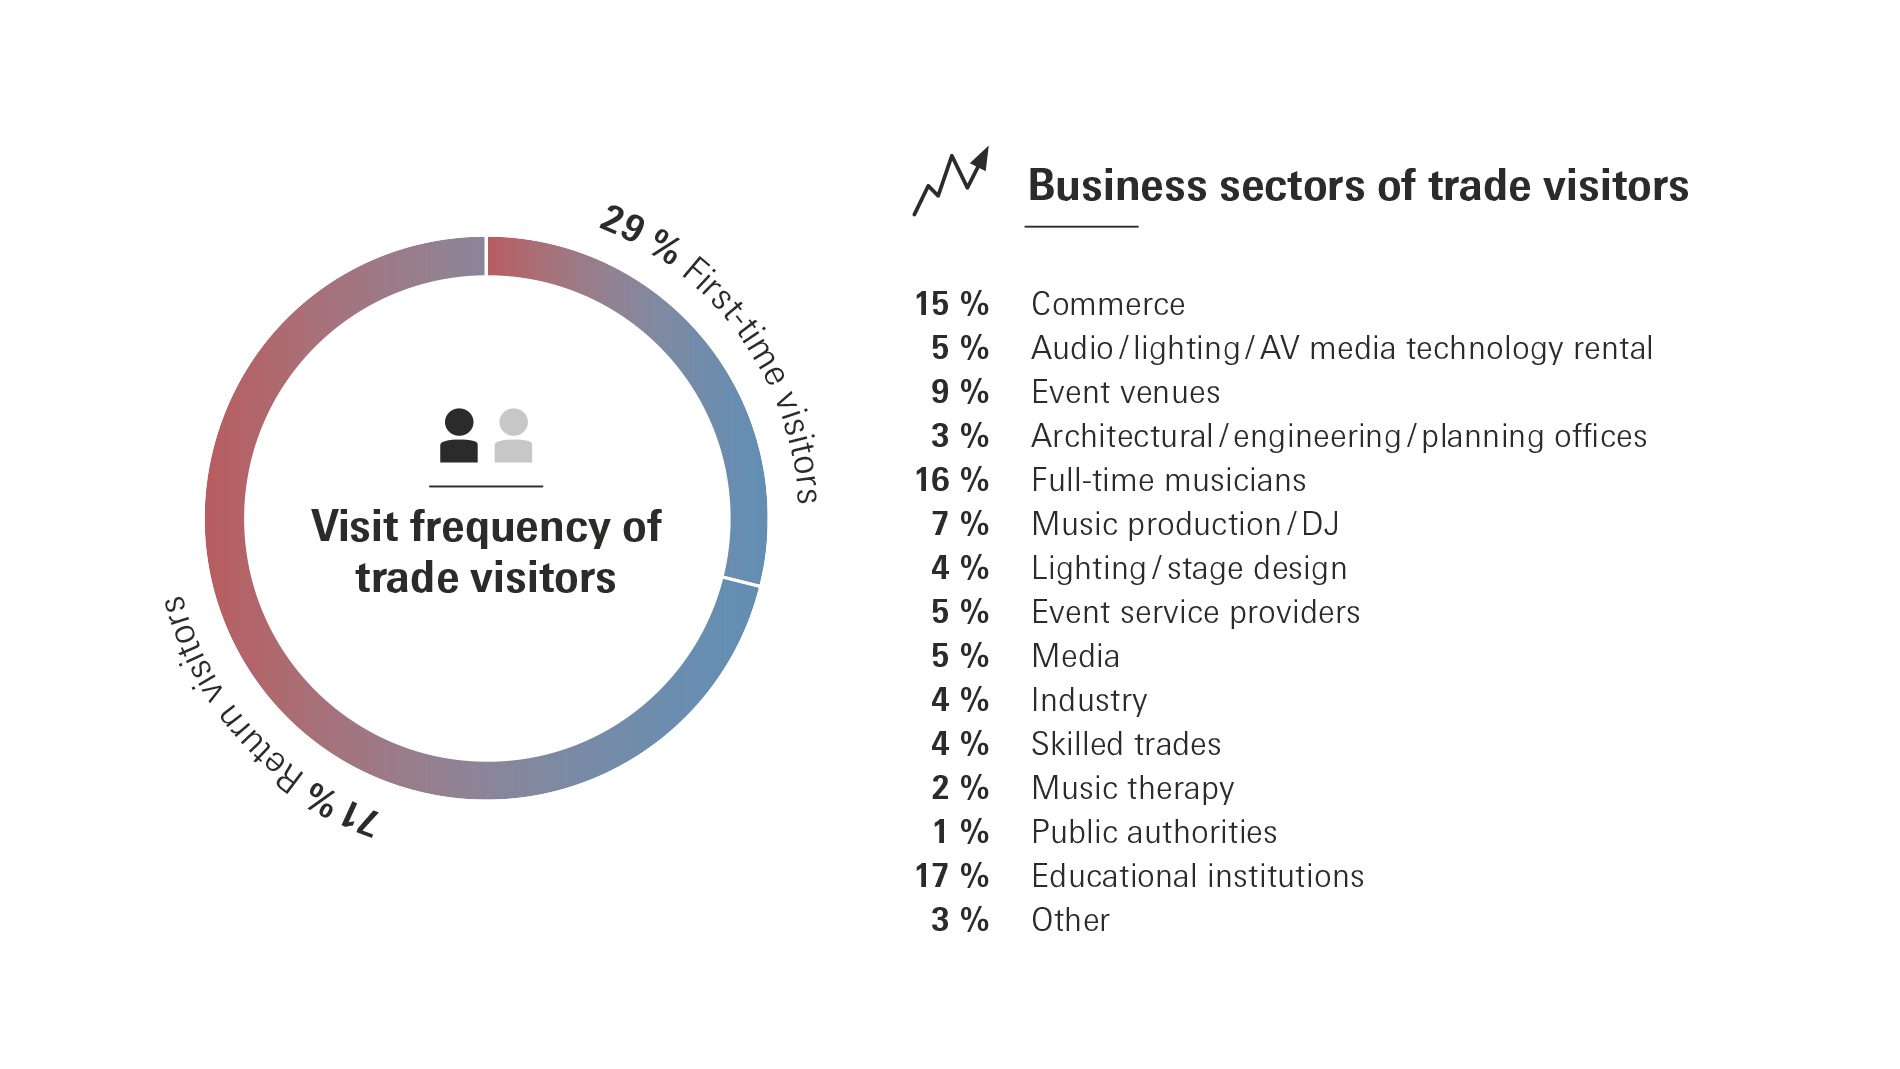 Prolight + Sound: Business sectors of trade visitors 2019